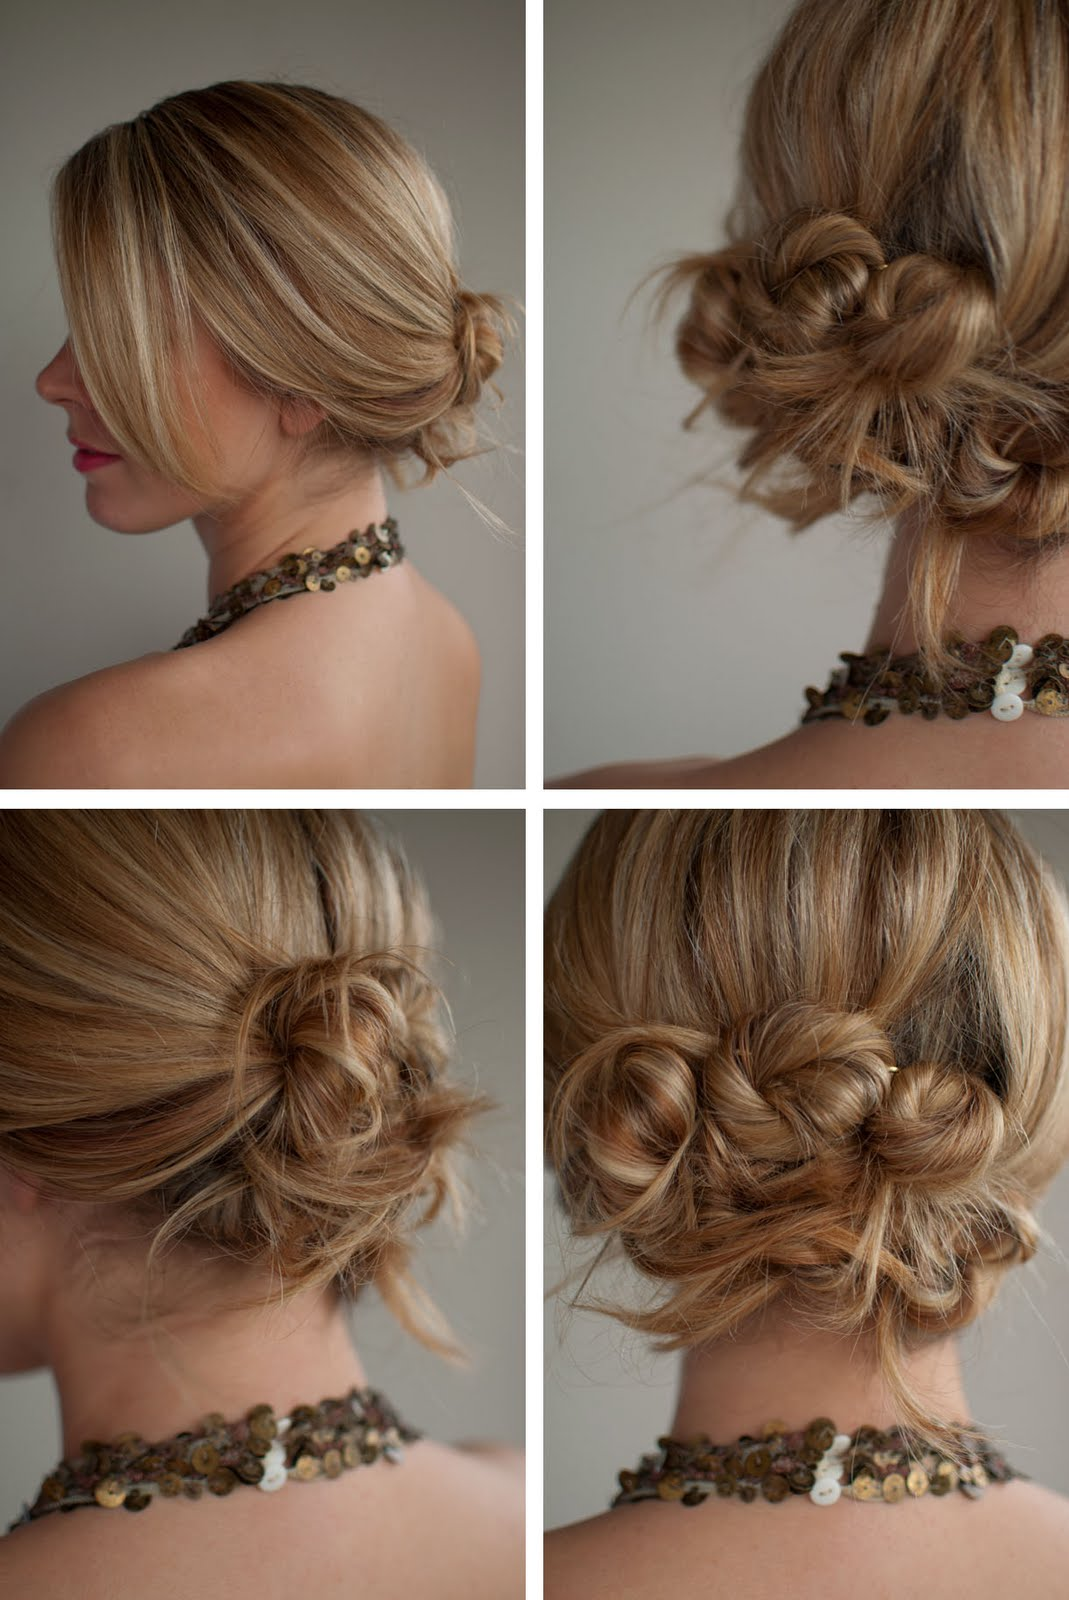 30 days of twist & pin hairstyles – day 19 - hair romance